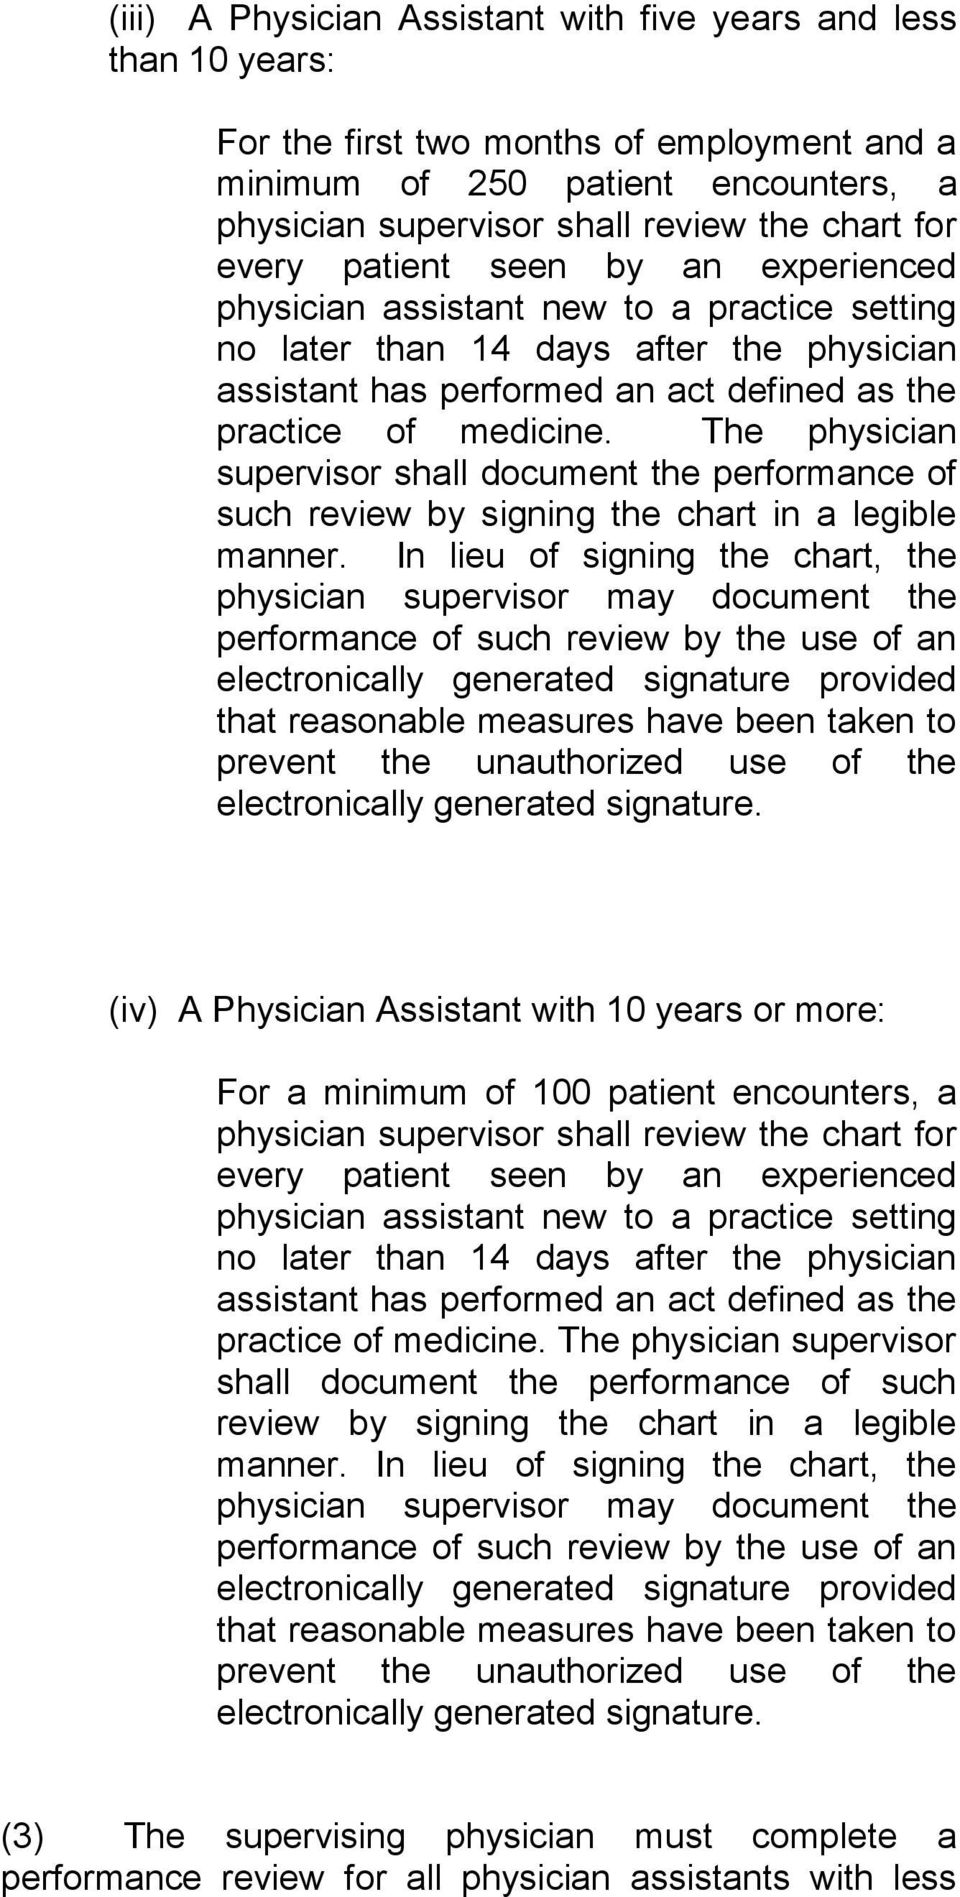 The physician supervisor shall document the performance of such review by signing the chart in a legible manner.